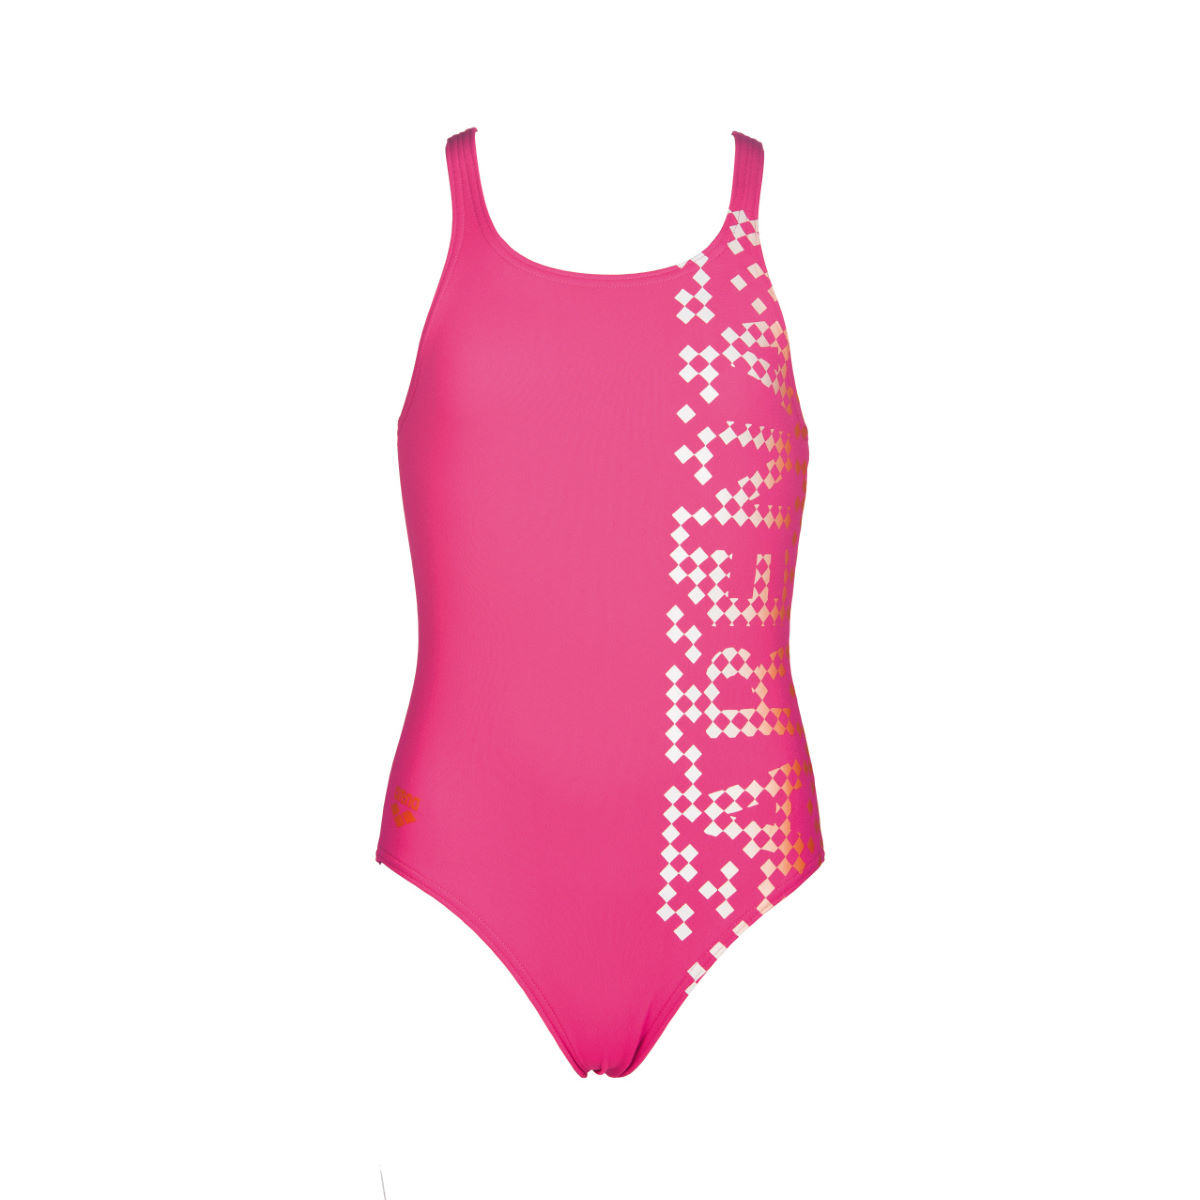 Arena girl s shed swimsuit internal rose mango aw17 000119 903 22 4